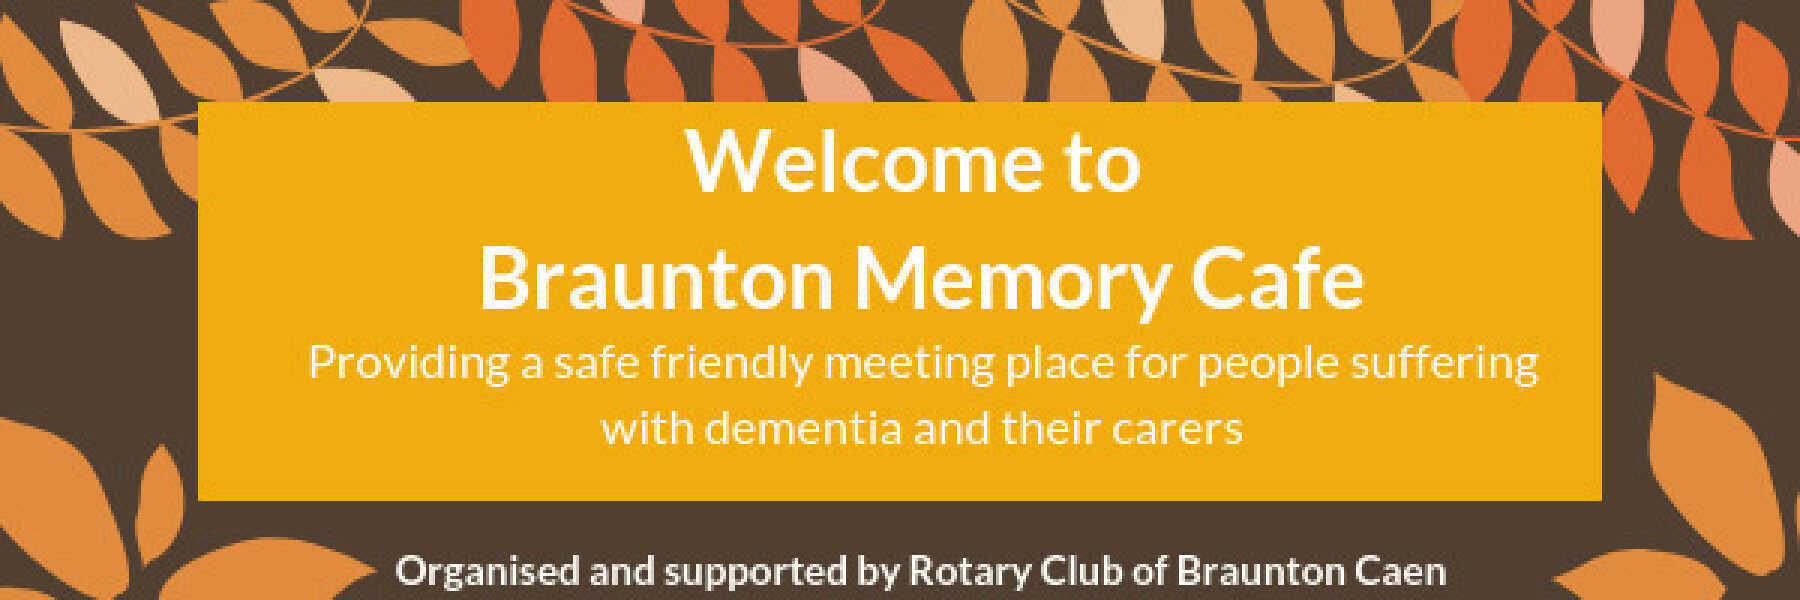 Featured Image for Braunton Memory Cafe